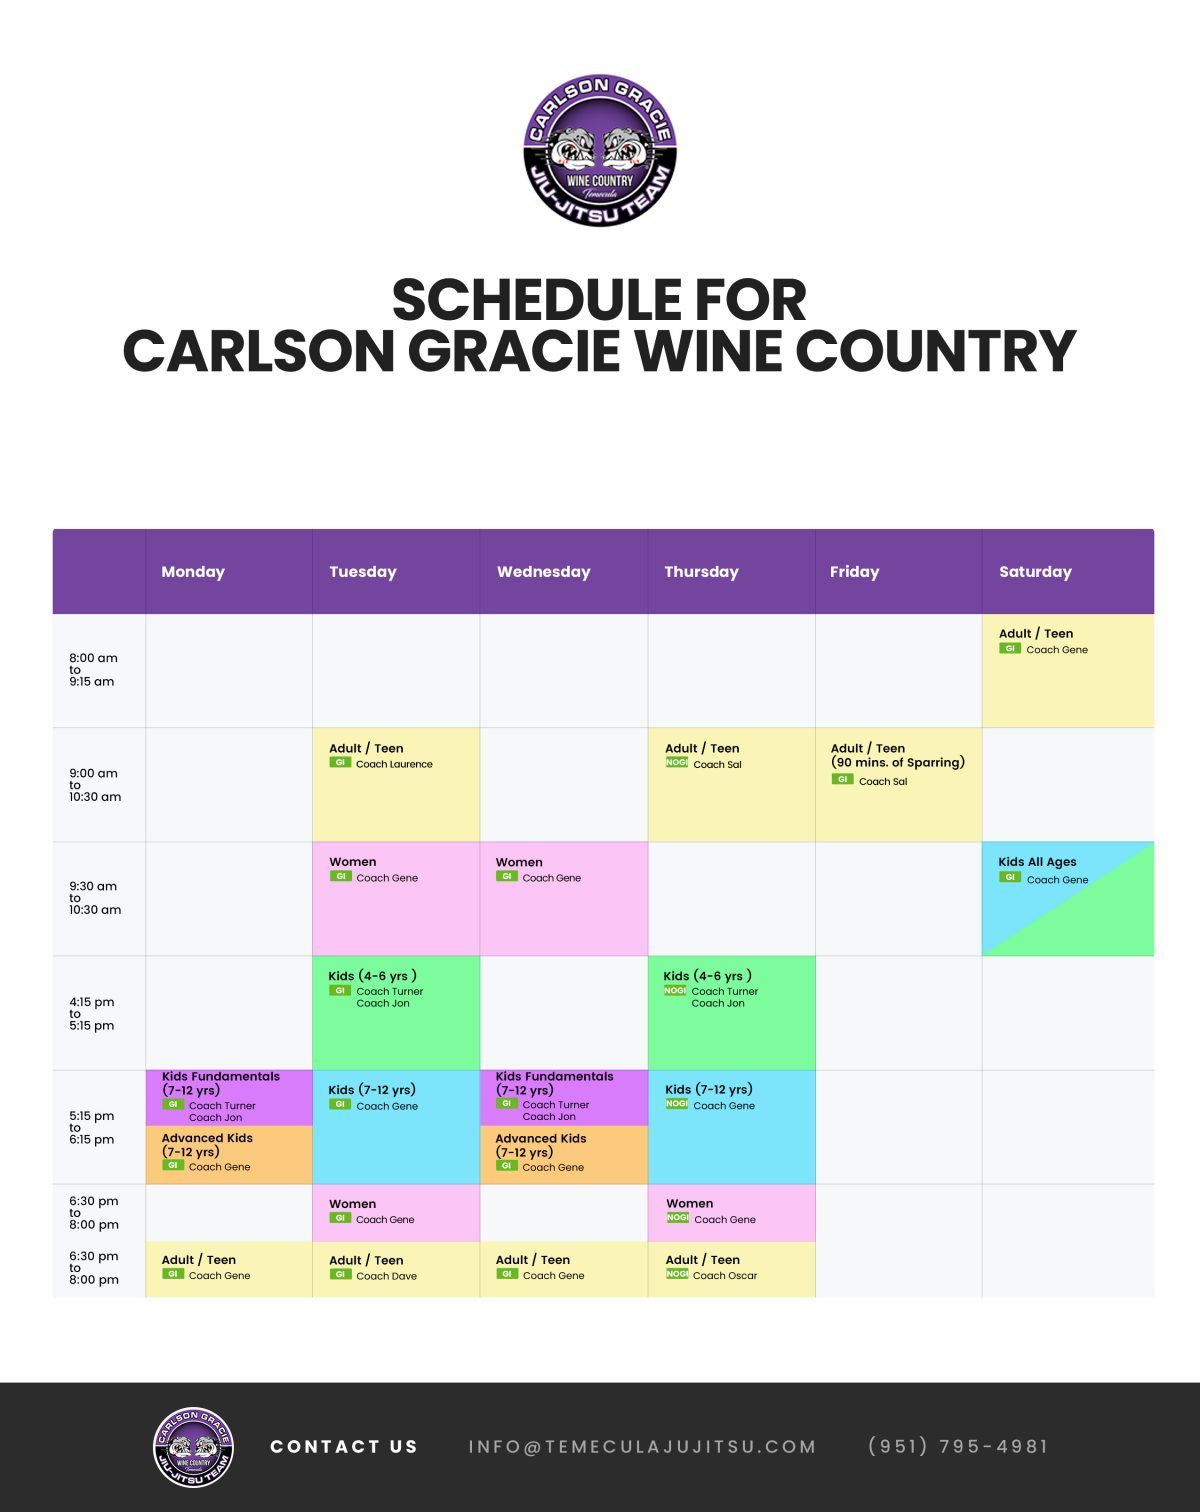 SCHEDULE - Carlson Gracie Wine Country